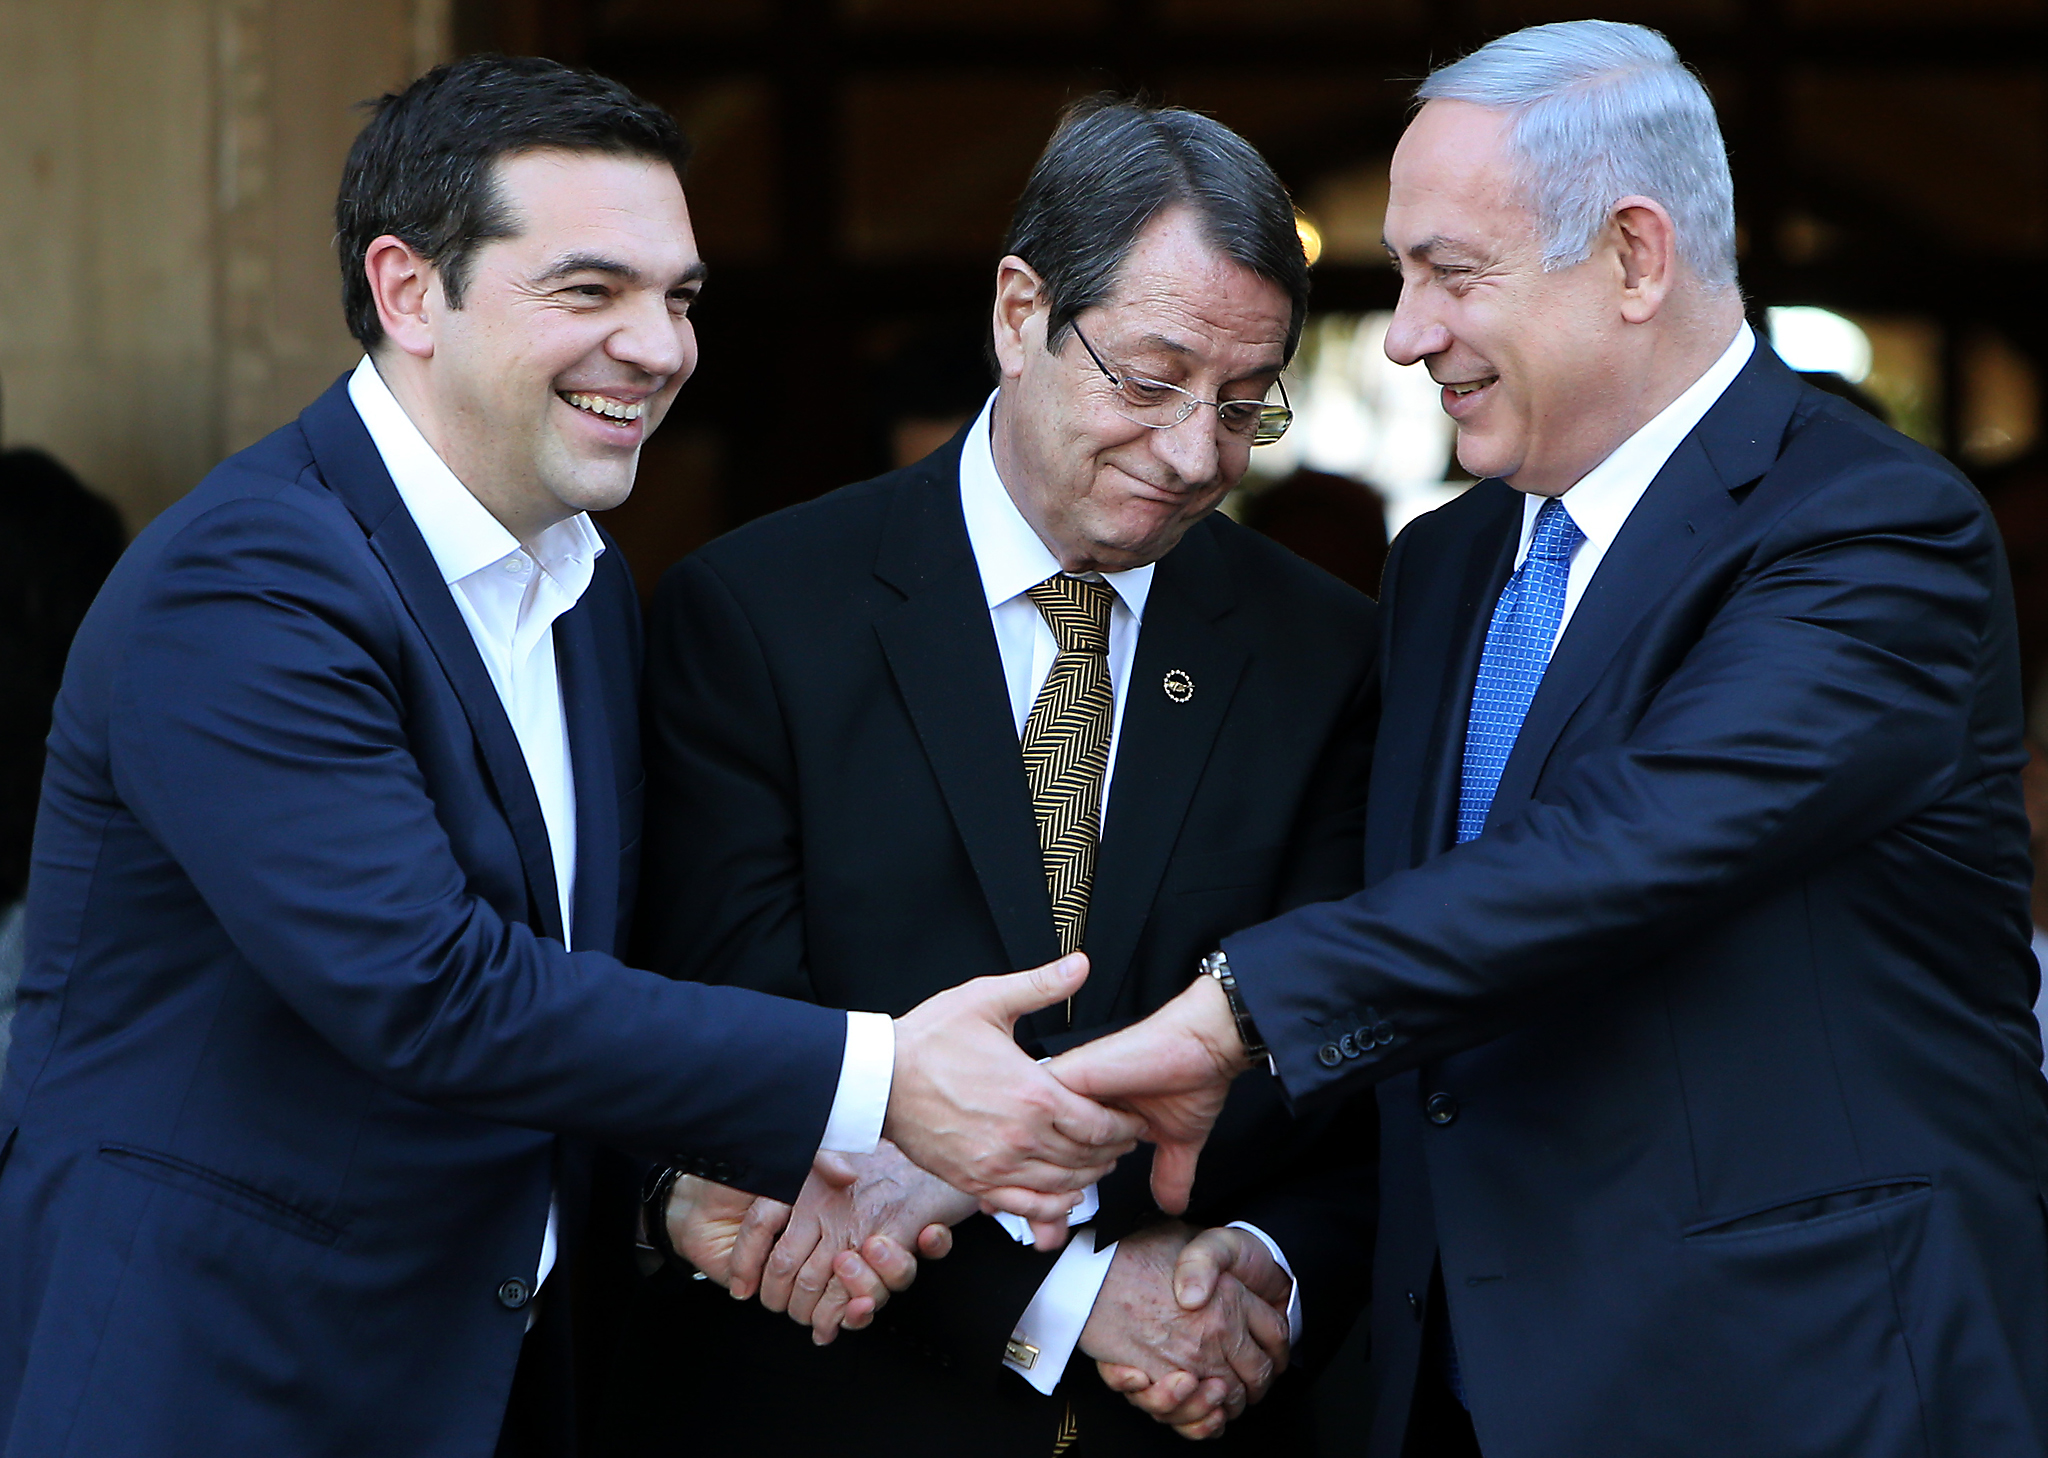 Nicos Anastasides, Alexis Tsipras, Benjamin Netanyahu...Cypriot president Nicos Anastasides, centre, Greek Prime Minister Alexis Tsipras, left, and  Israeli Prime Minister Benjamin Netanyahu shake hands after leaving their meeting from the presidential palace in capital Nicosia in the Mediterranean island of Cyprus, Thursday, Jan. 28, 2016. The leaders of Cyprus, Greece and Israel met in the Cypriot capital with the aim to strengthen cooperation and bolster stability in a region wracked by conflict. The talks are the first tripartite summit. Discussions will cover newly found offshore gas reserves and tourism, while the leaders will sign a cooperation agreement on water resources. (AP Photo/Petros Karadjias)